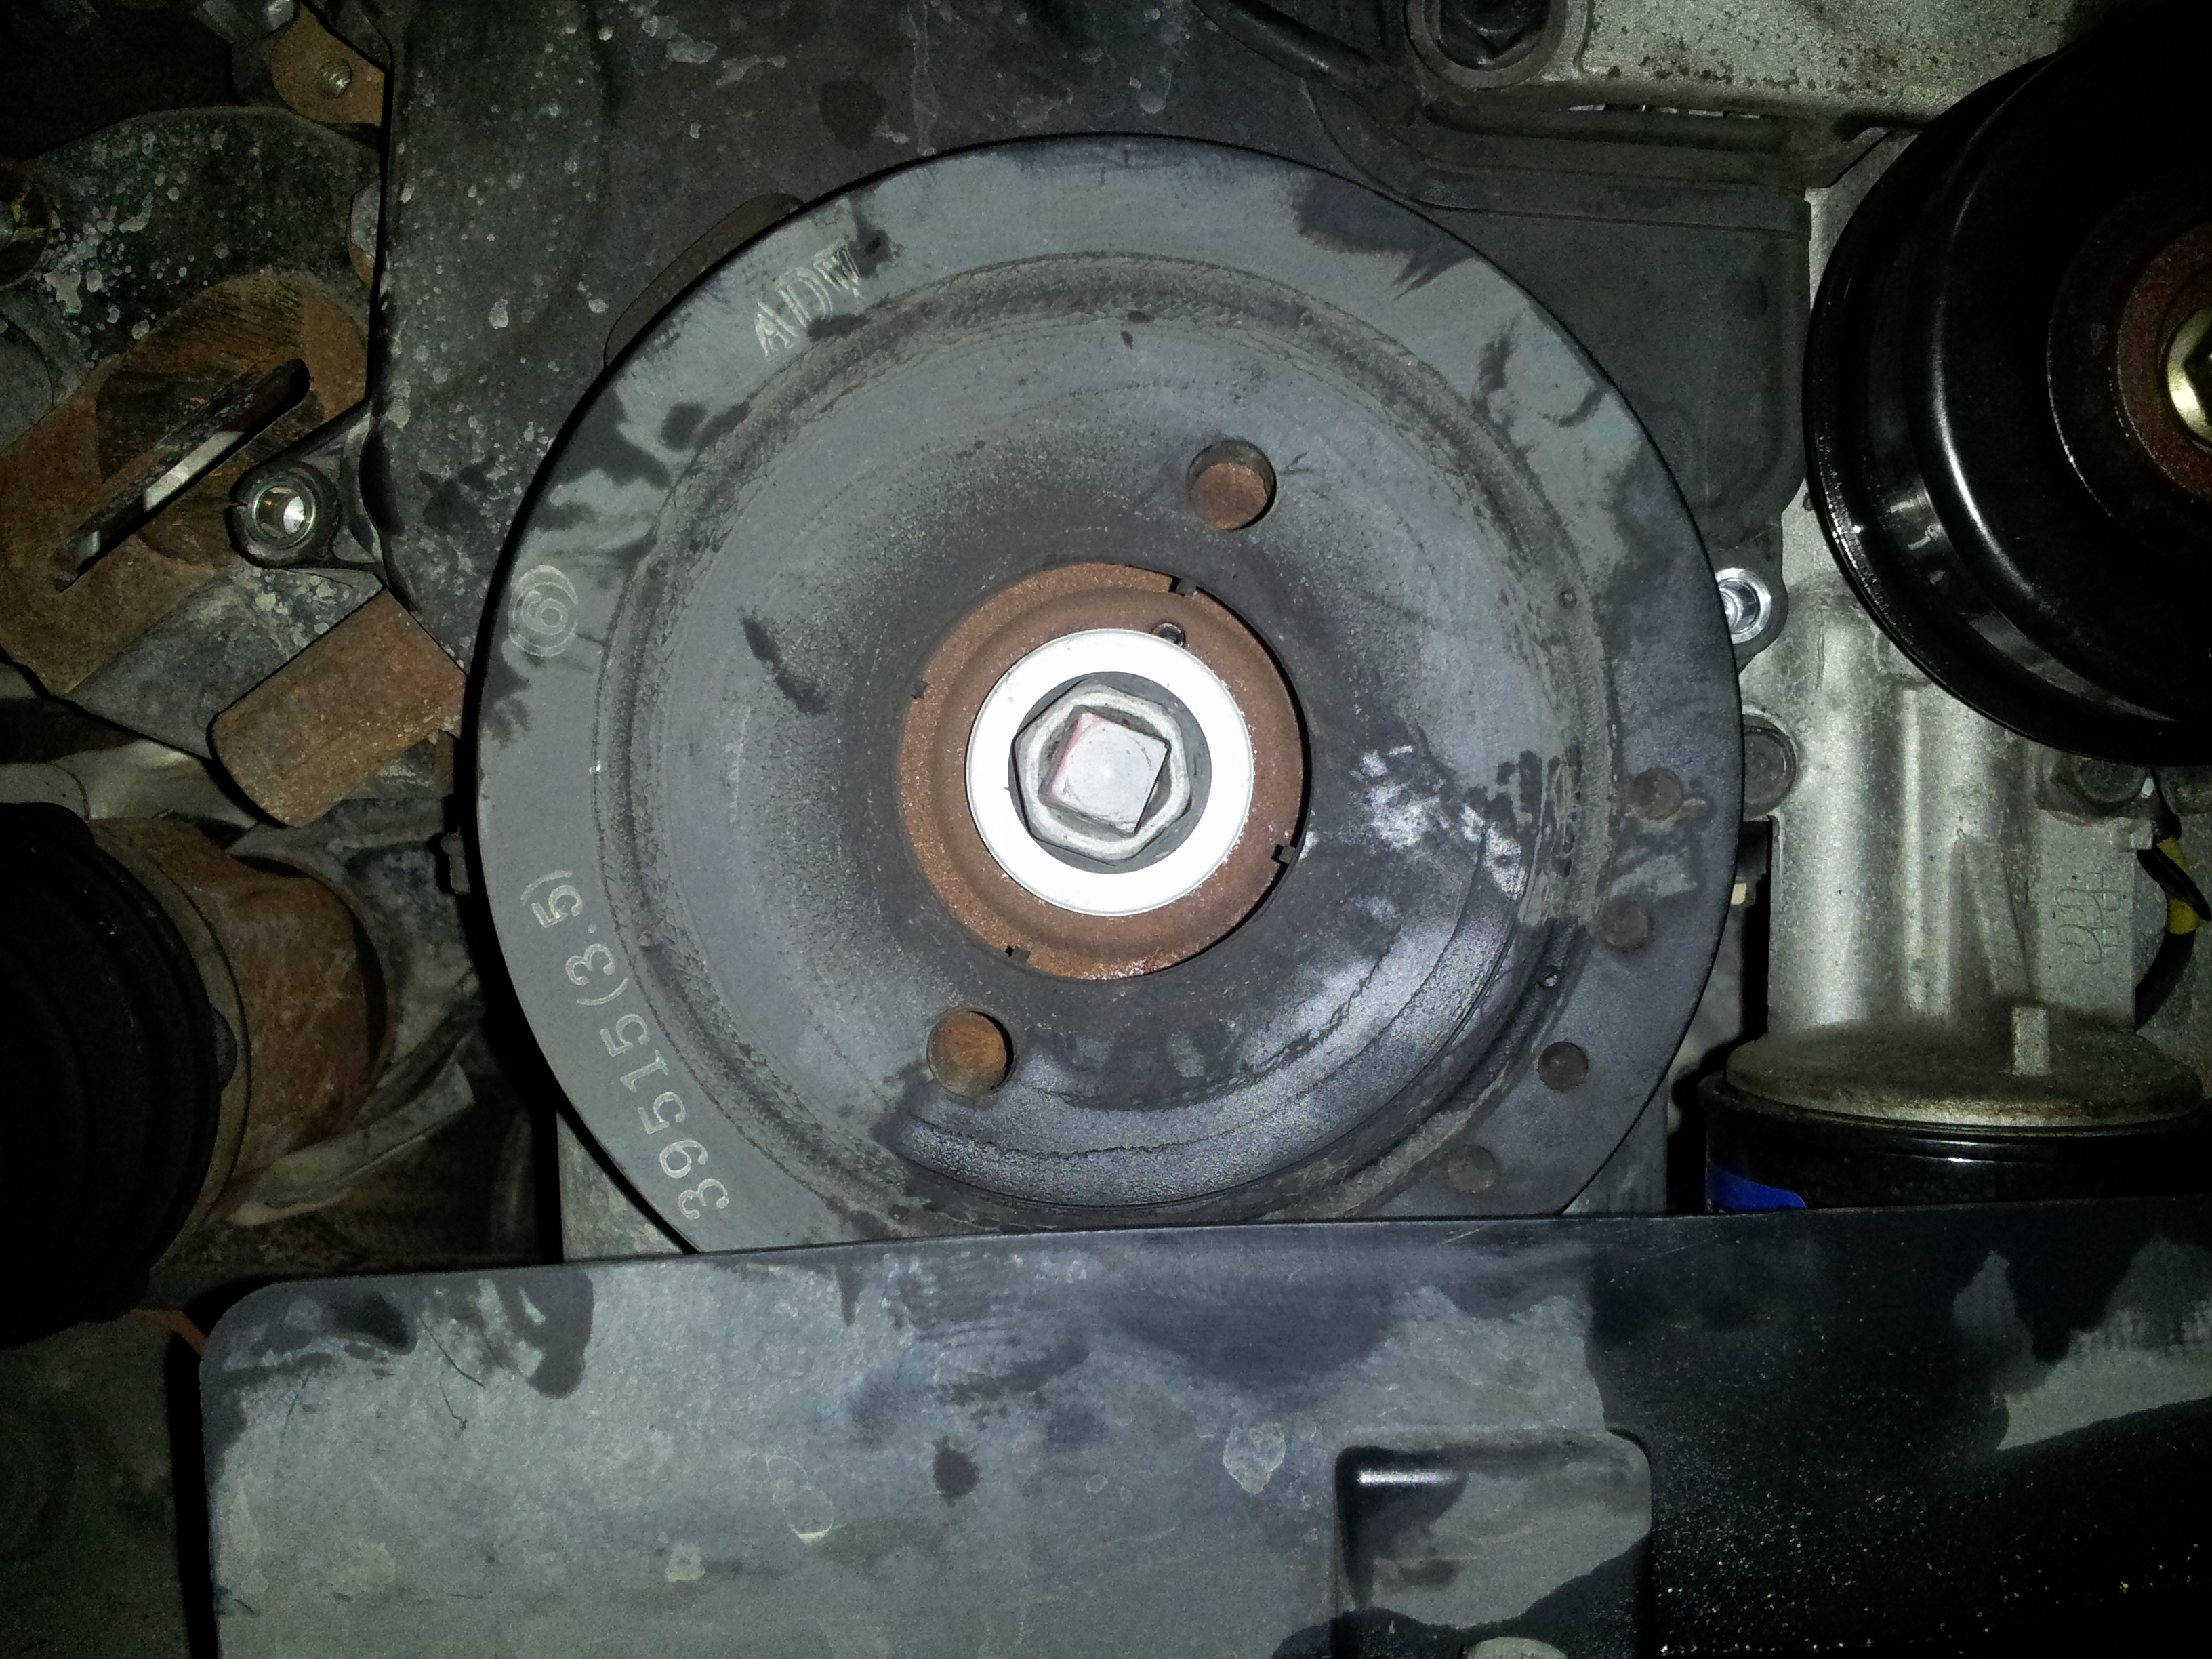 I Am Going To Do The Timing Belt Replacement Today On My Wifes 2006 2005 Kia Amanti Manual Troubleshooting Have Attached A Picture Of Crankshaft Pulley And Bolt